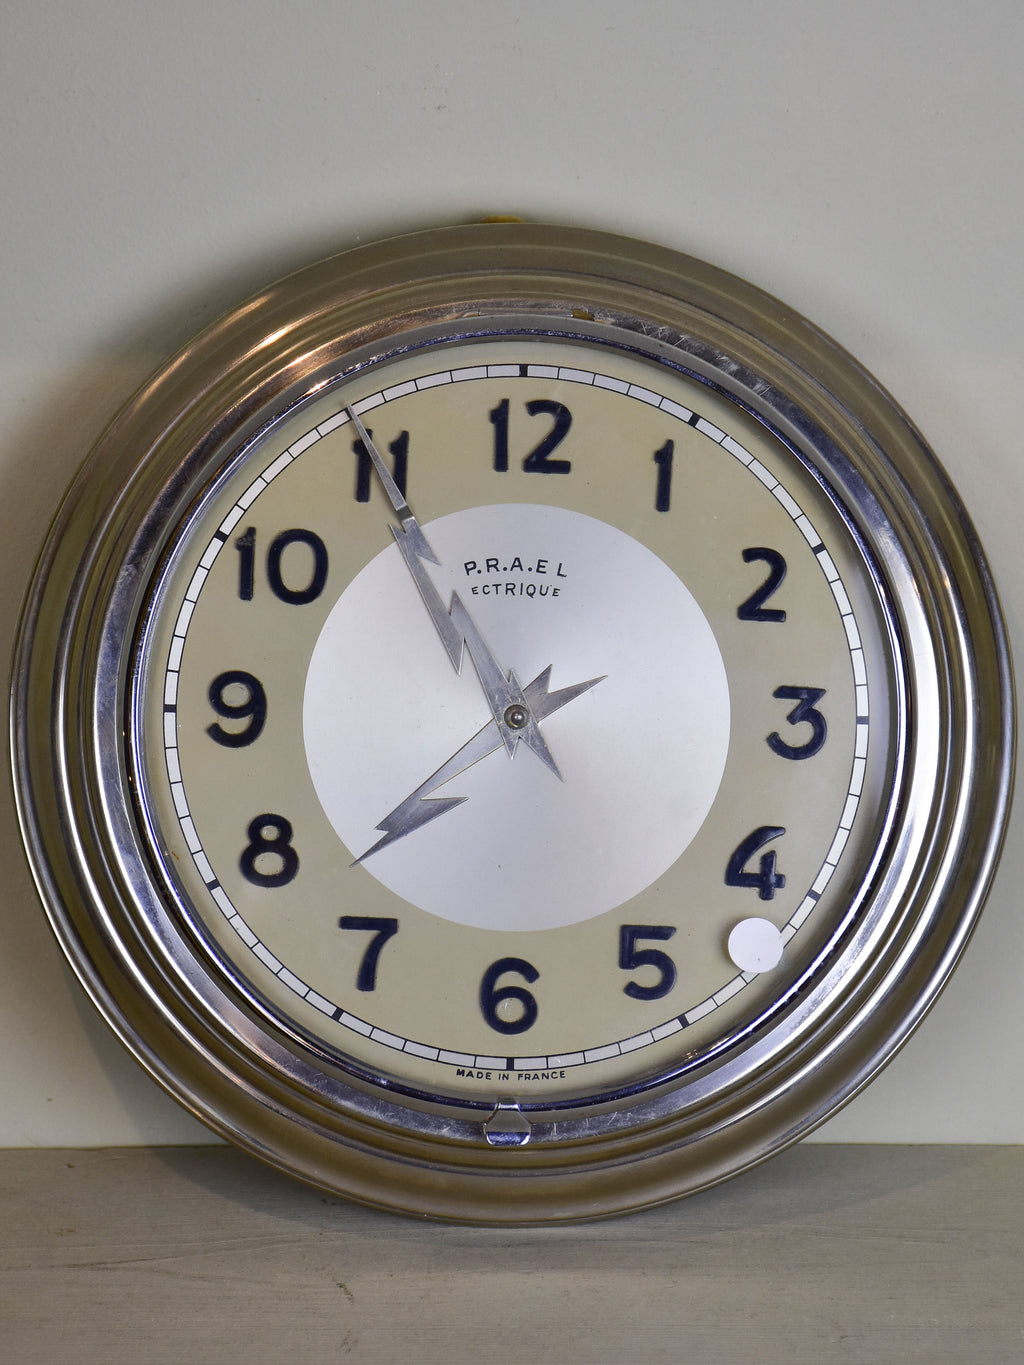 French wall clock from the 1940's P.R.A.E.L